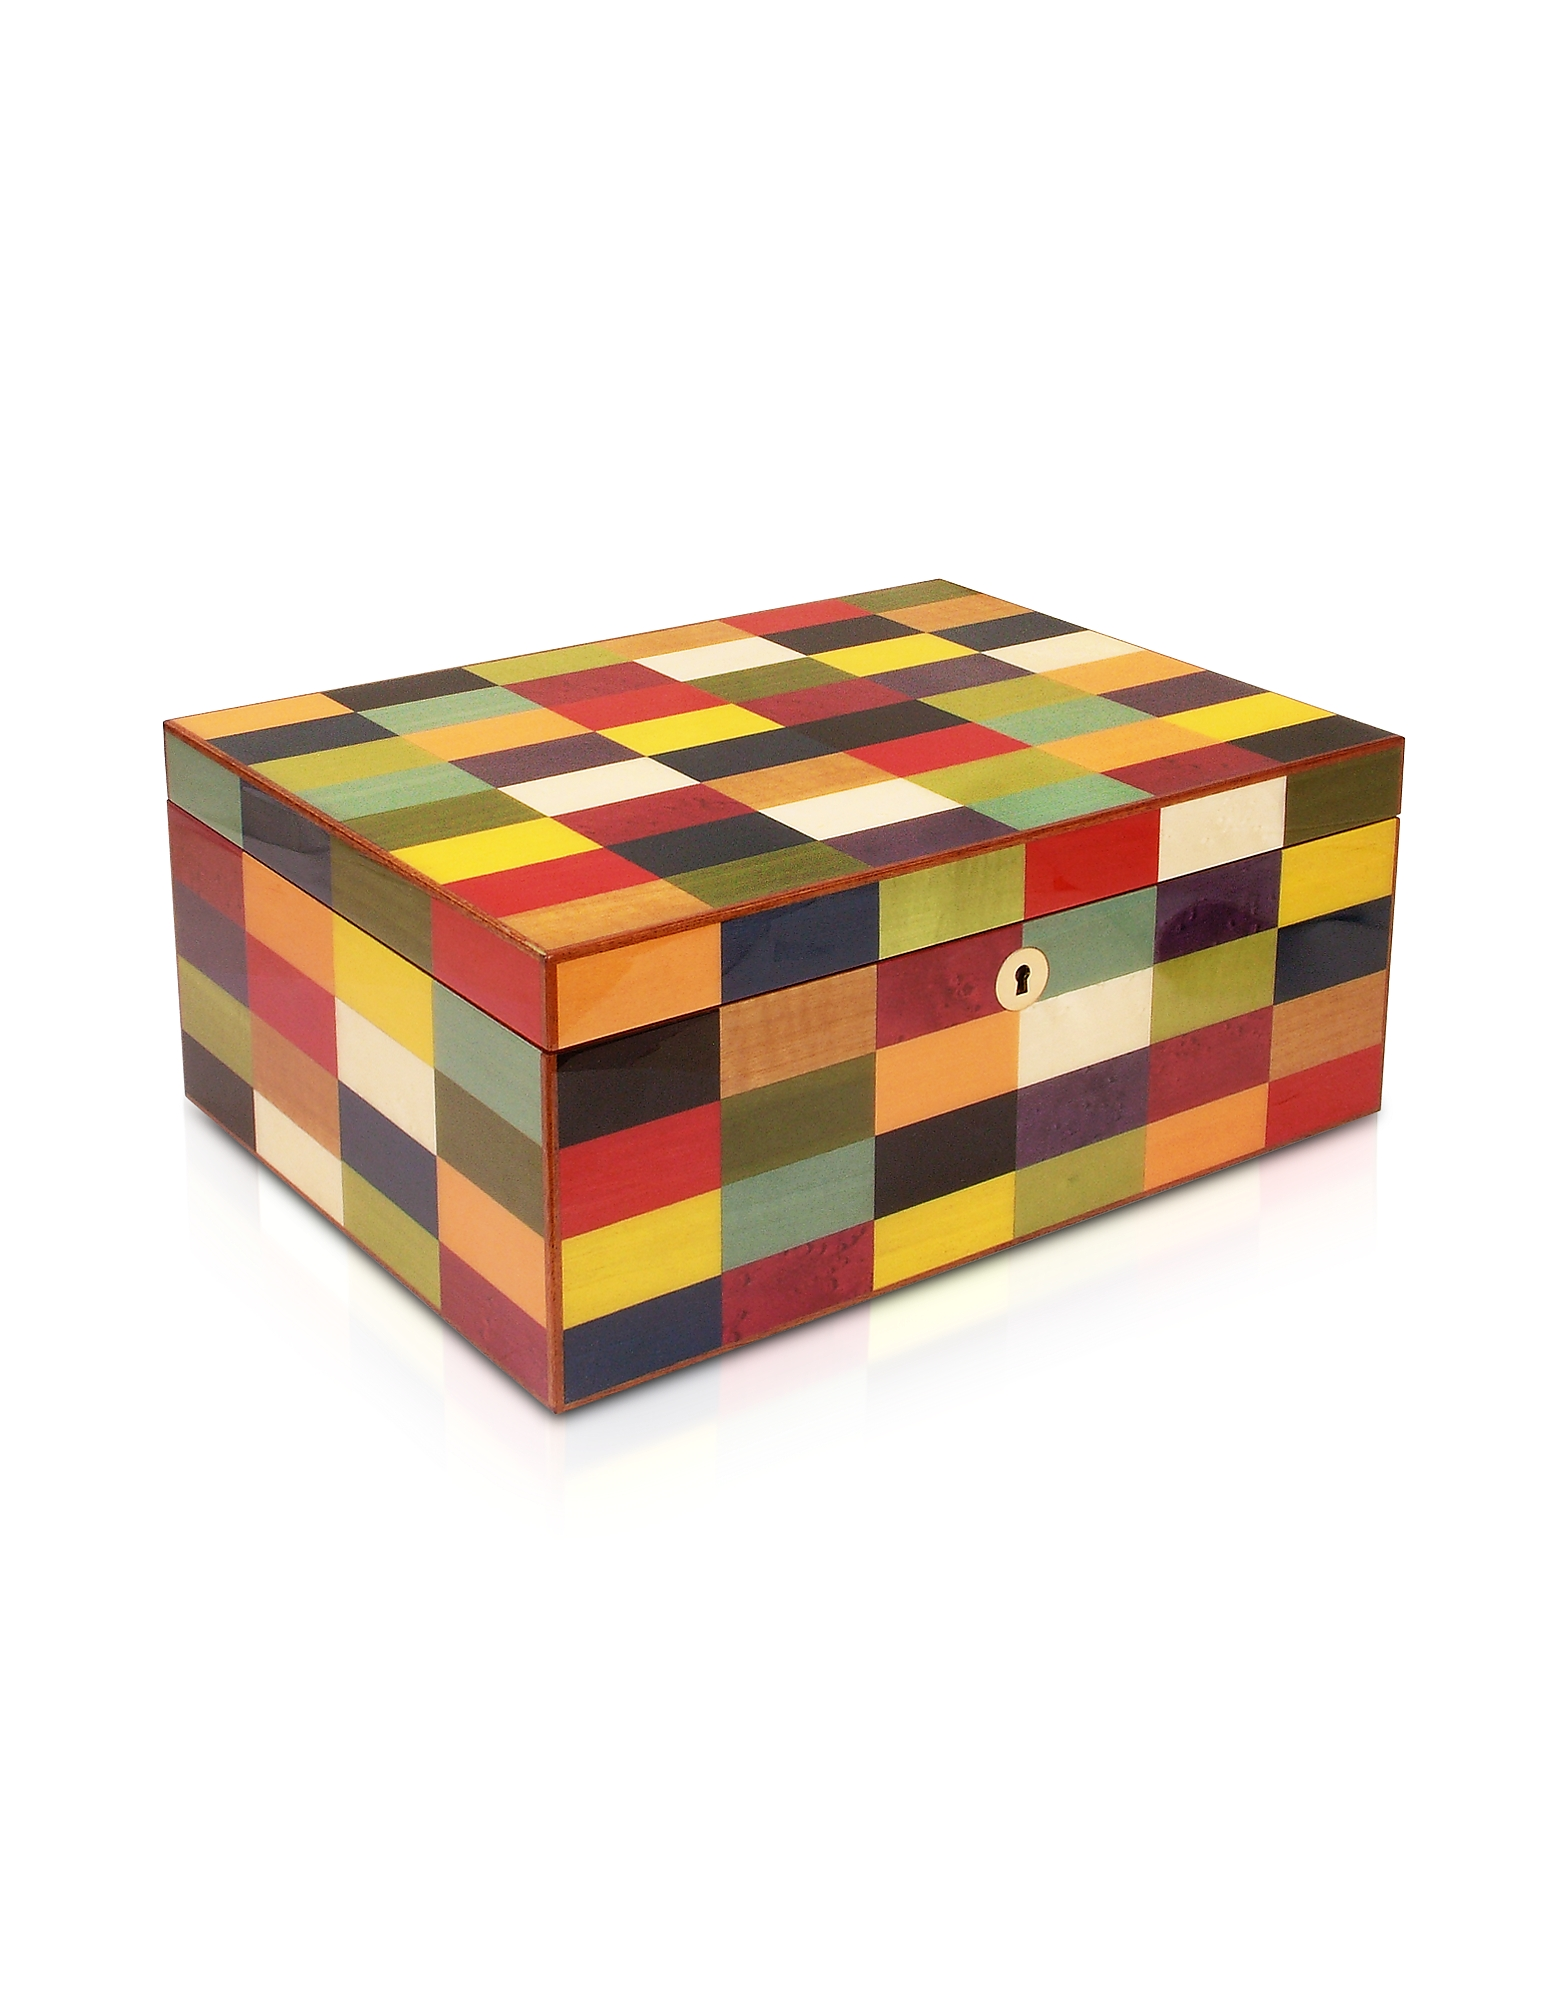 Forzieri Jewelry Boxes, Multicolor Arlecchino Inlaid Wood Game Box